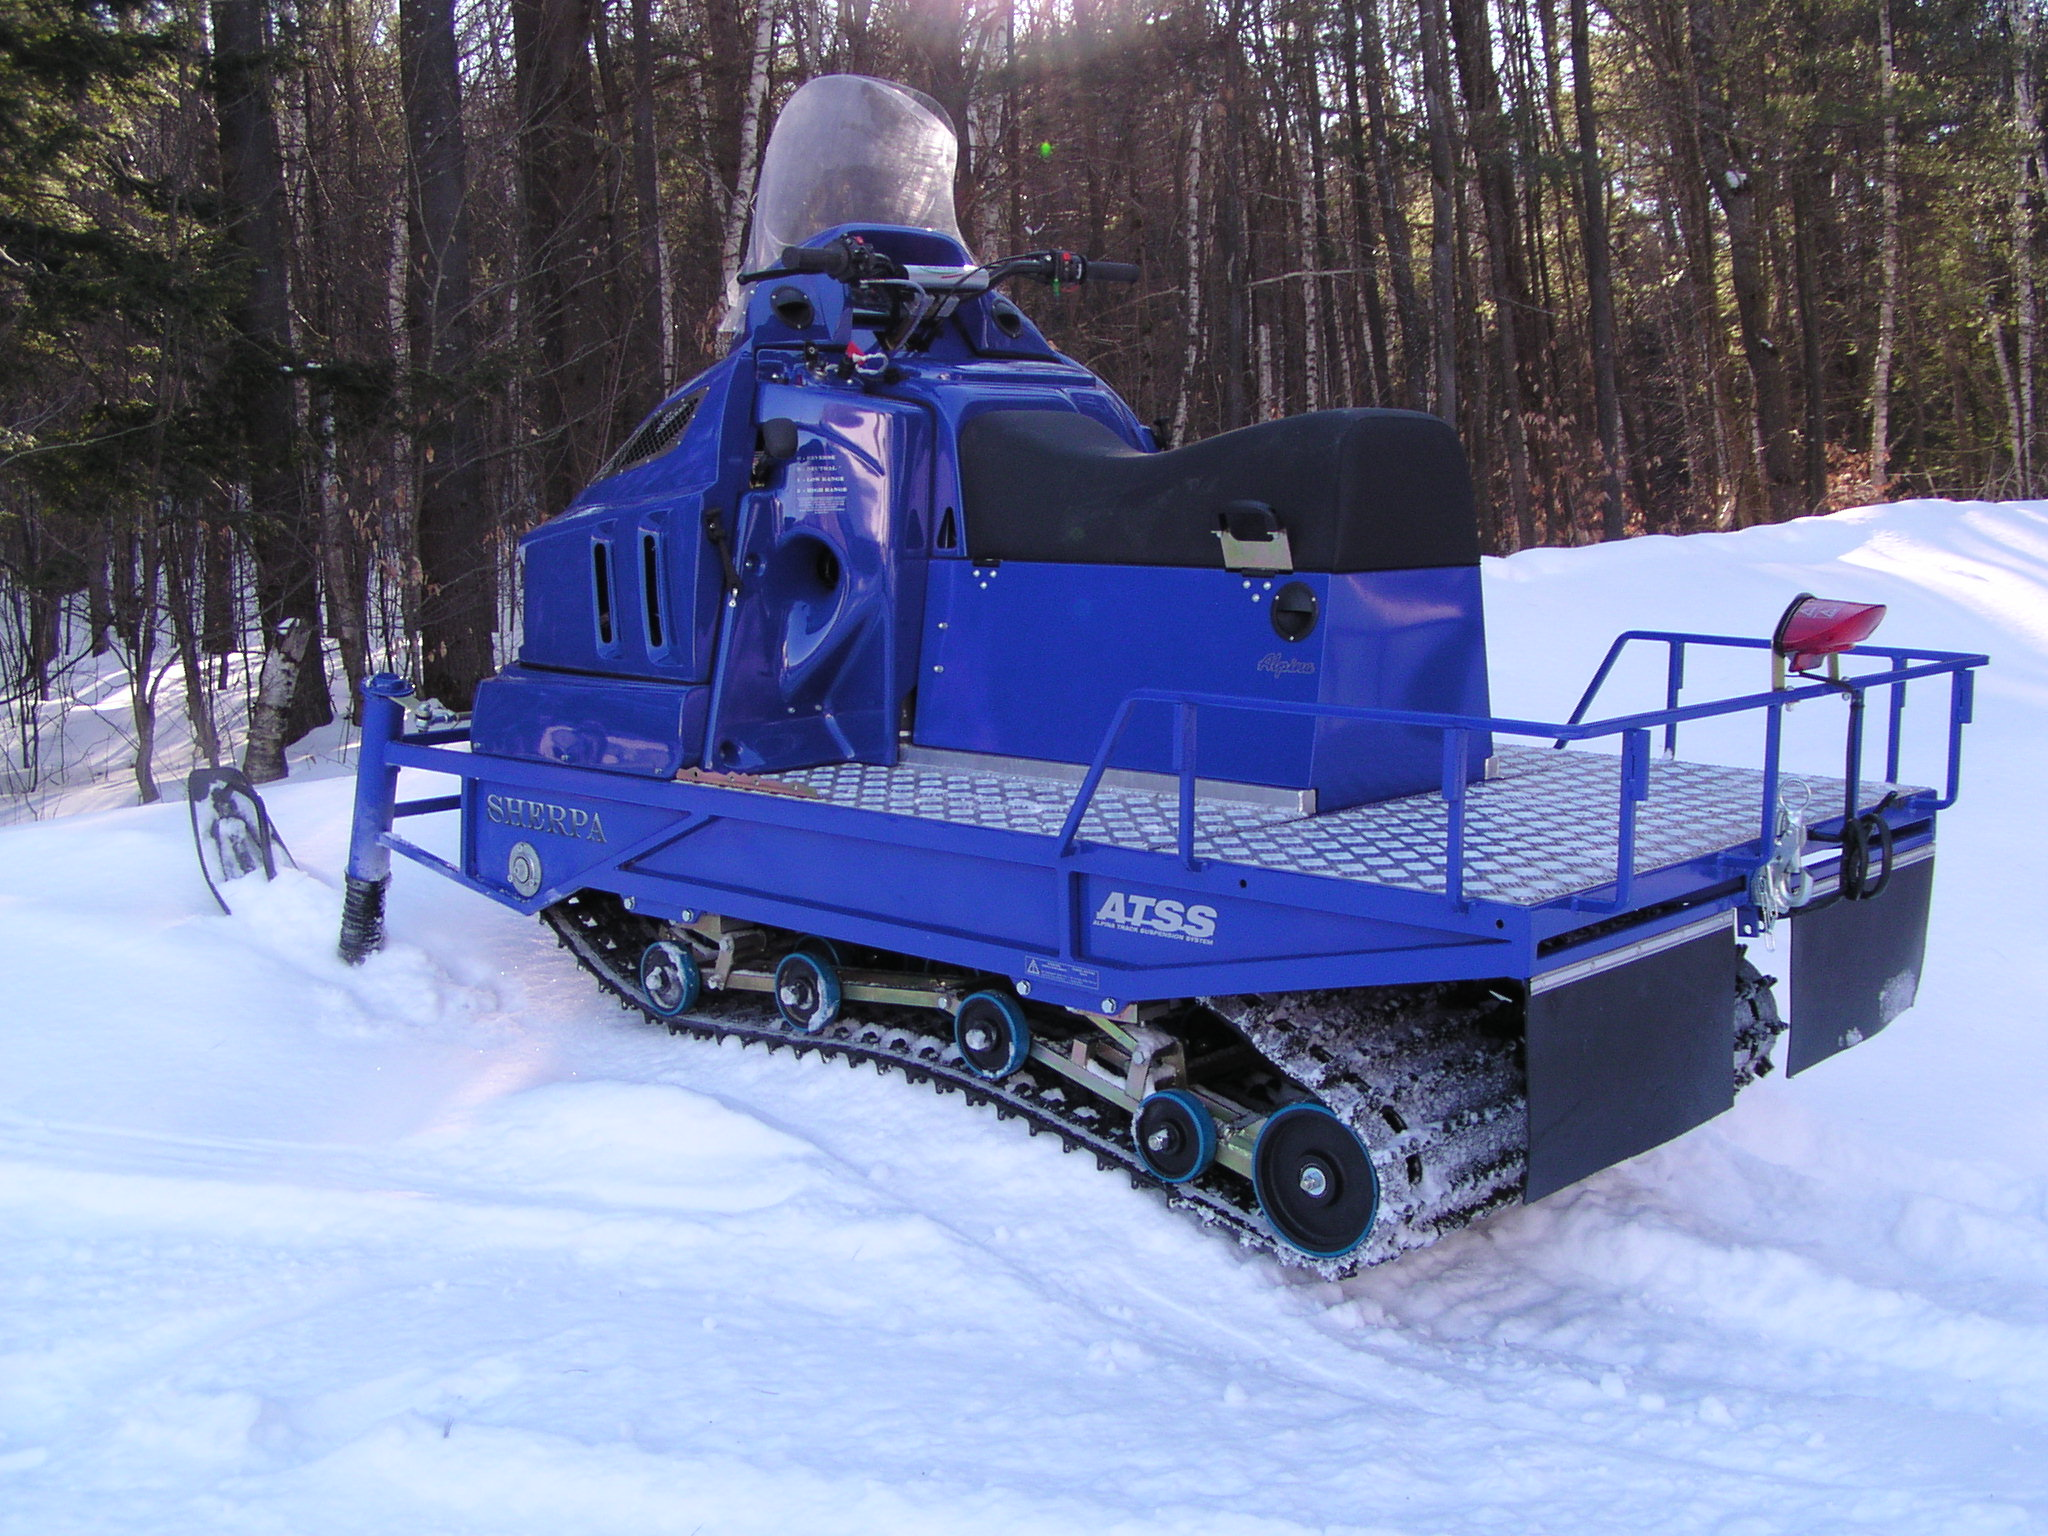 FileDualtrack Snowmobilejpg Wikimedia Commons - Alpina sherpa